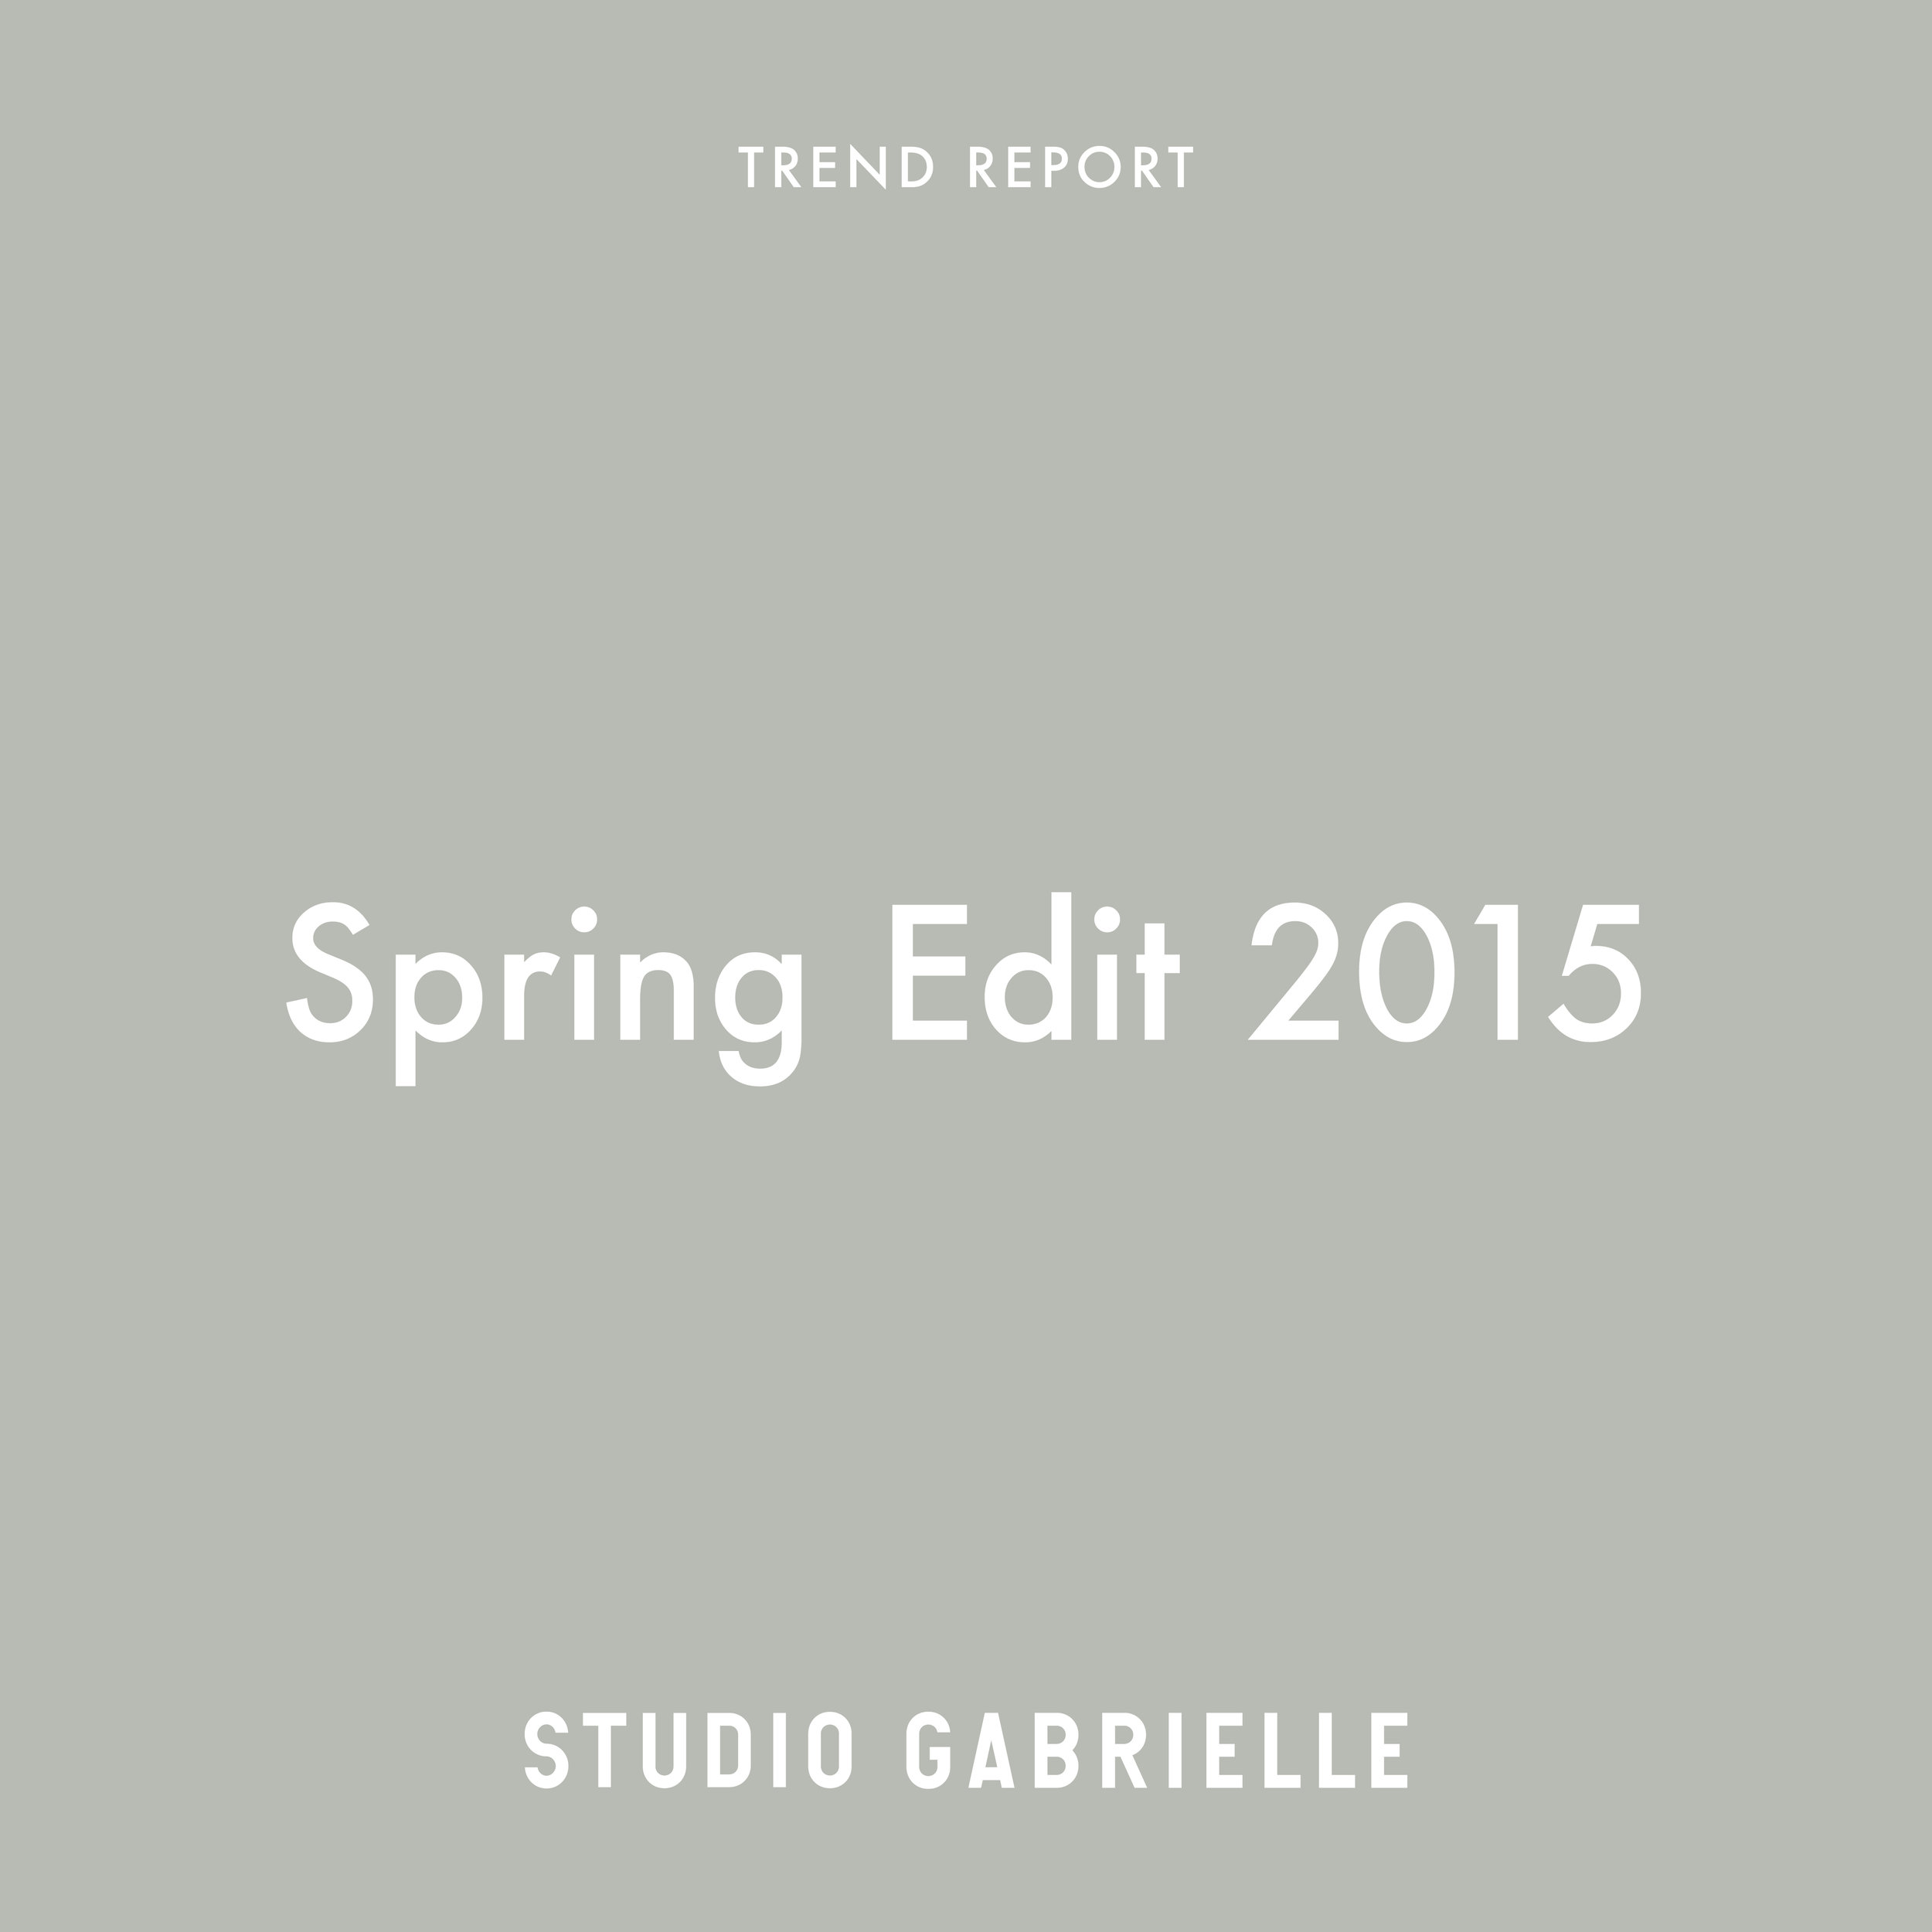 StudioGabrielle-Trend-Report-Spring-Edit-studiogabrielle.co.uk